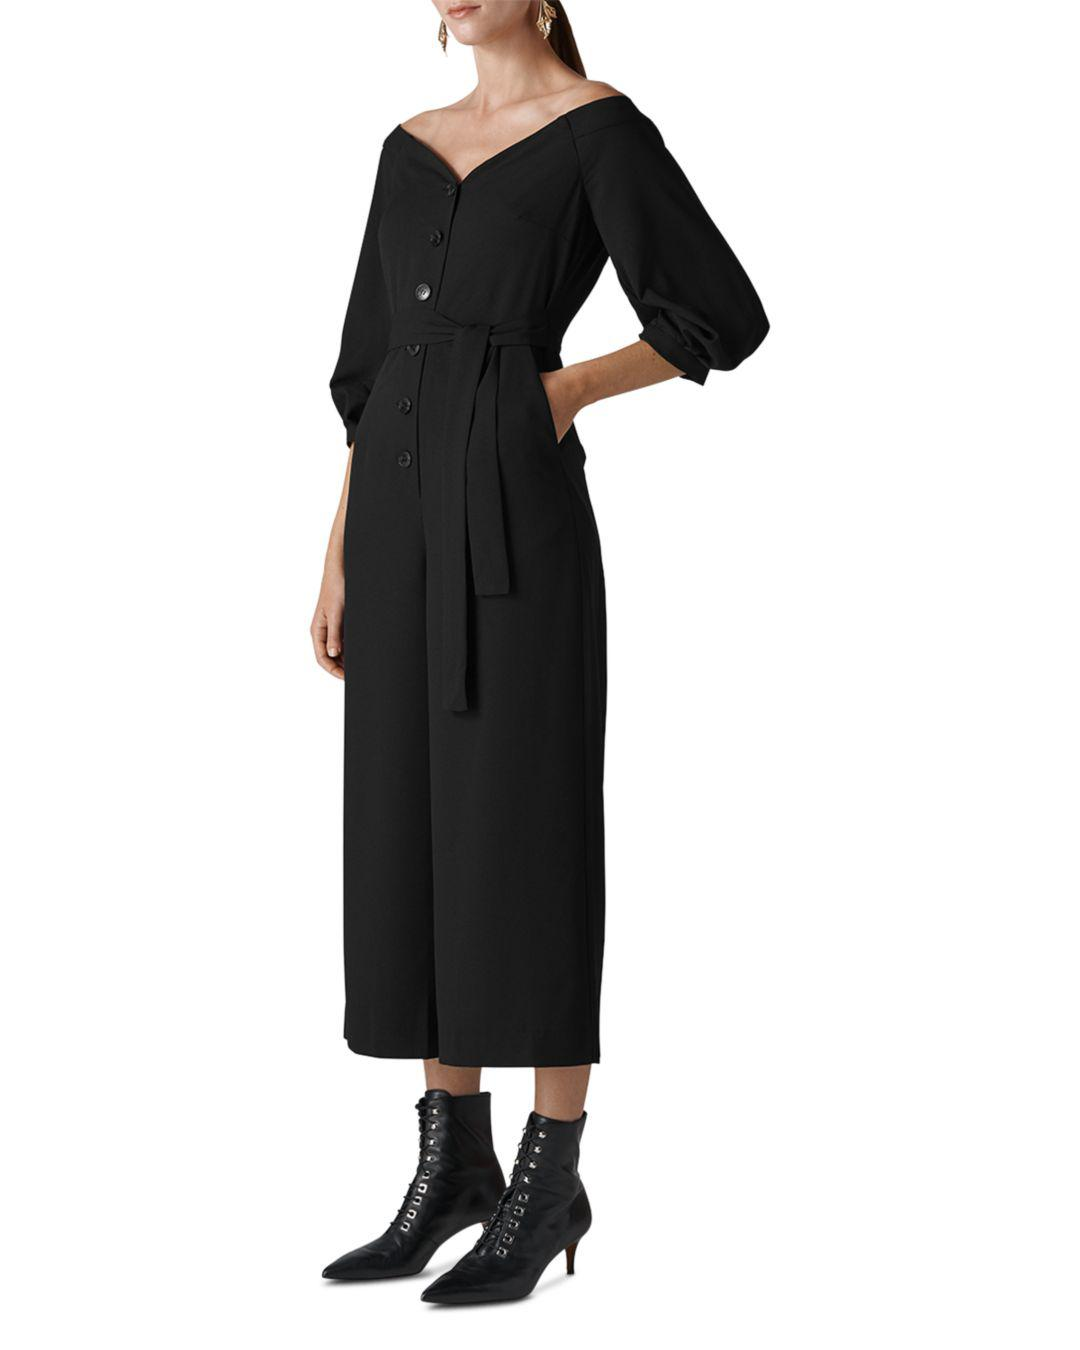 a7d8b2b4cd3c Whistles Carina Off-the-shoulder Jumpsuit in Black - Save 40% - Lyst